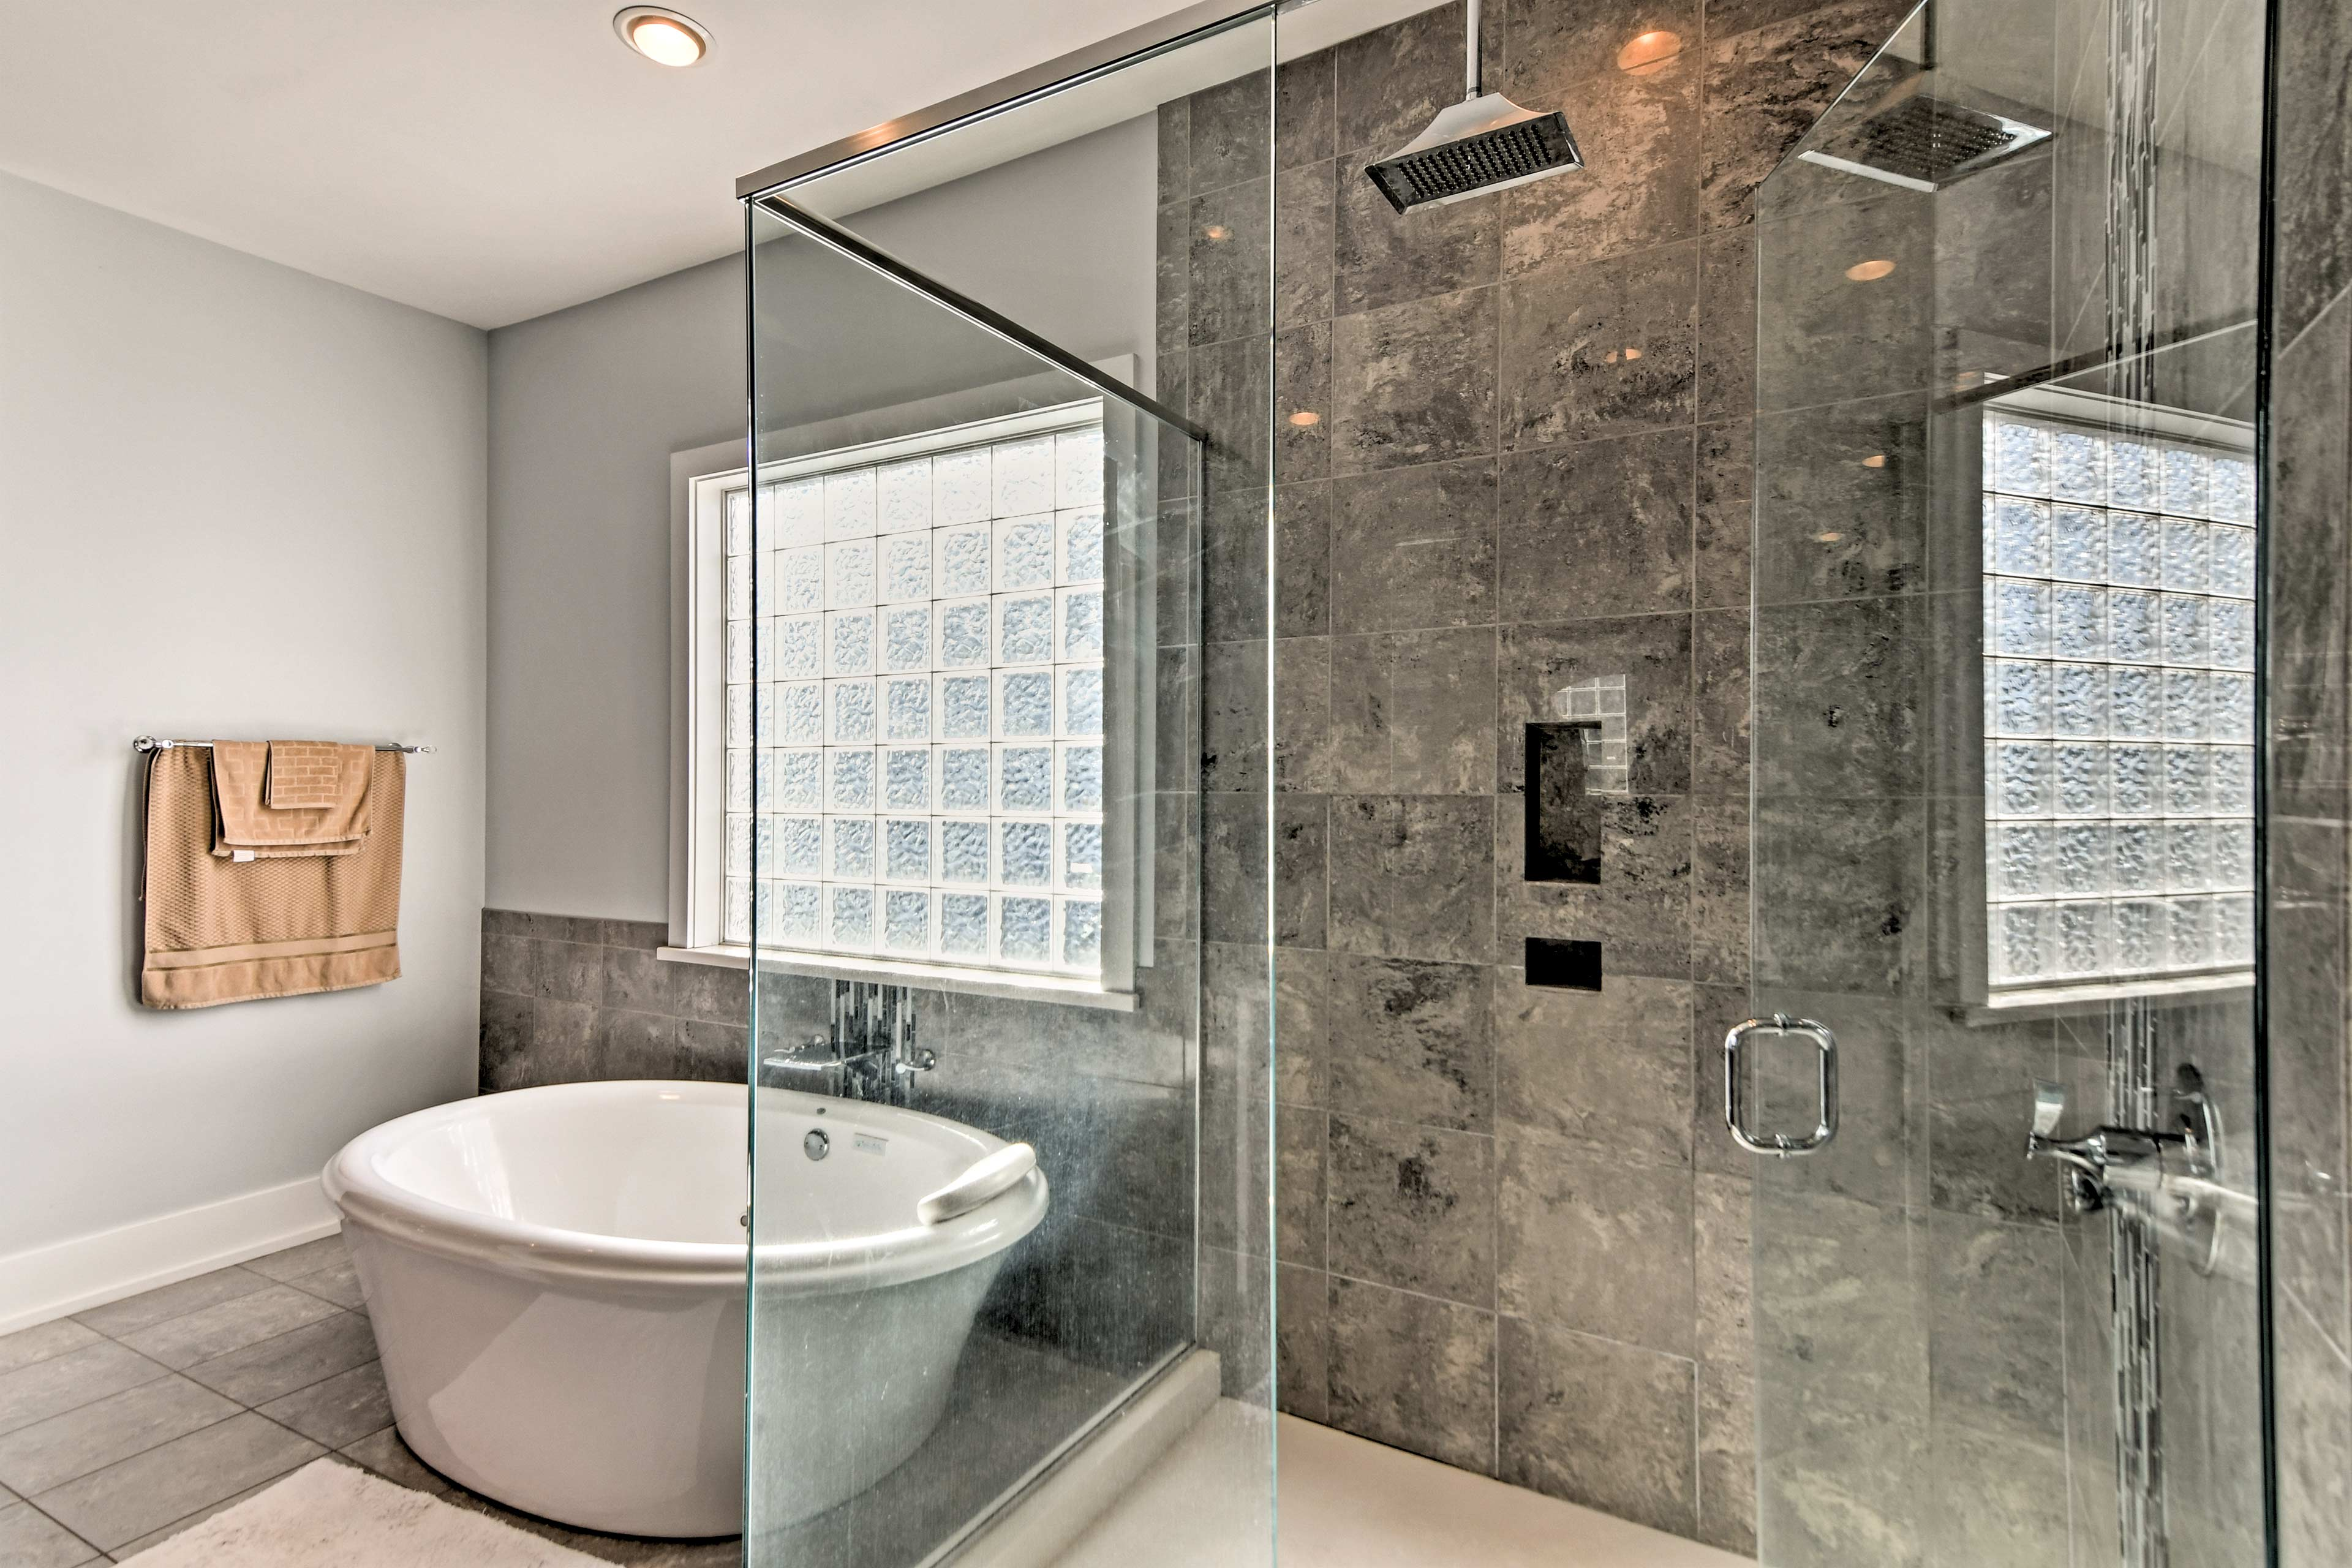 The shower features body jets and a rainfall showerhead.